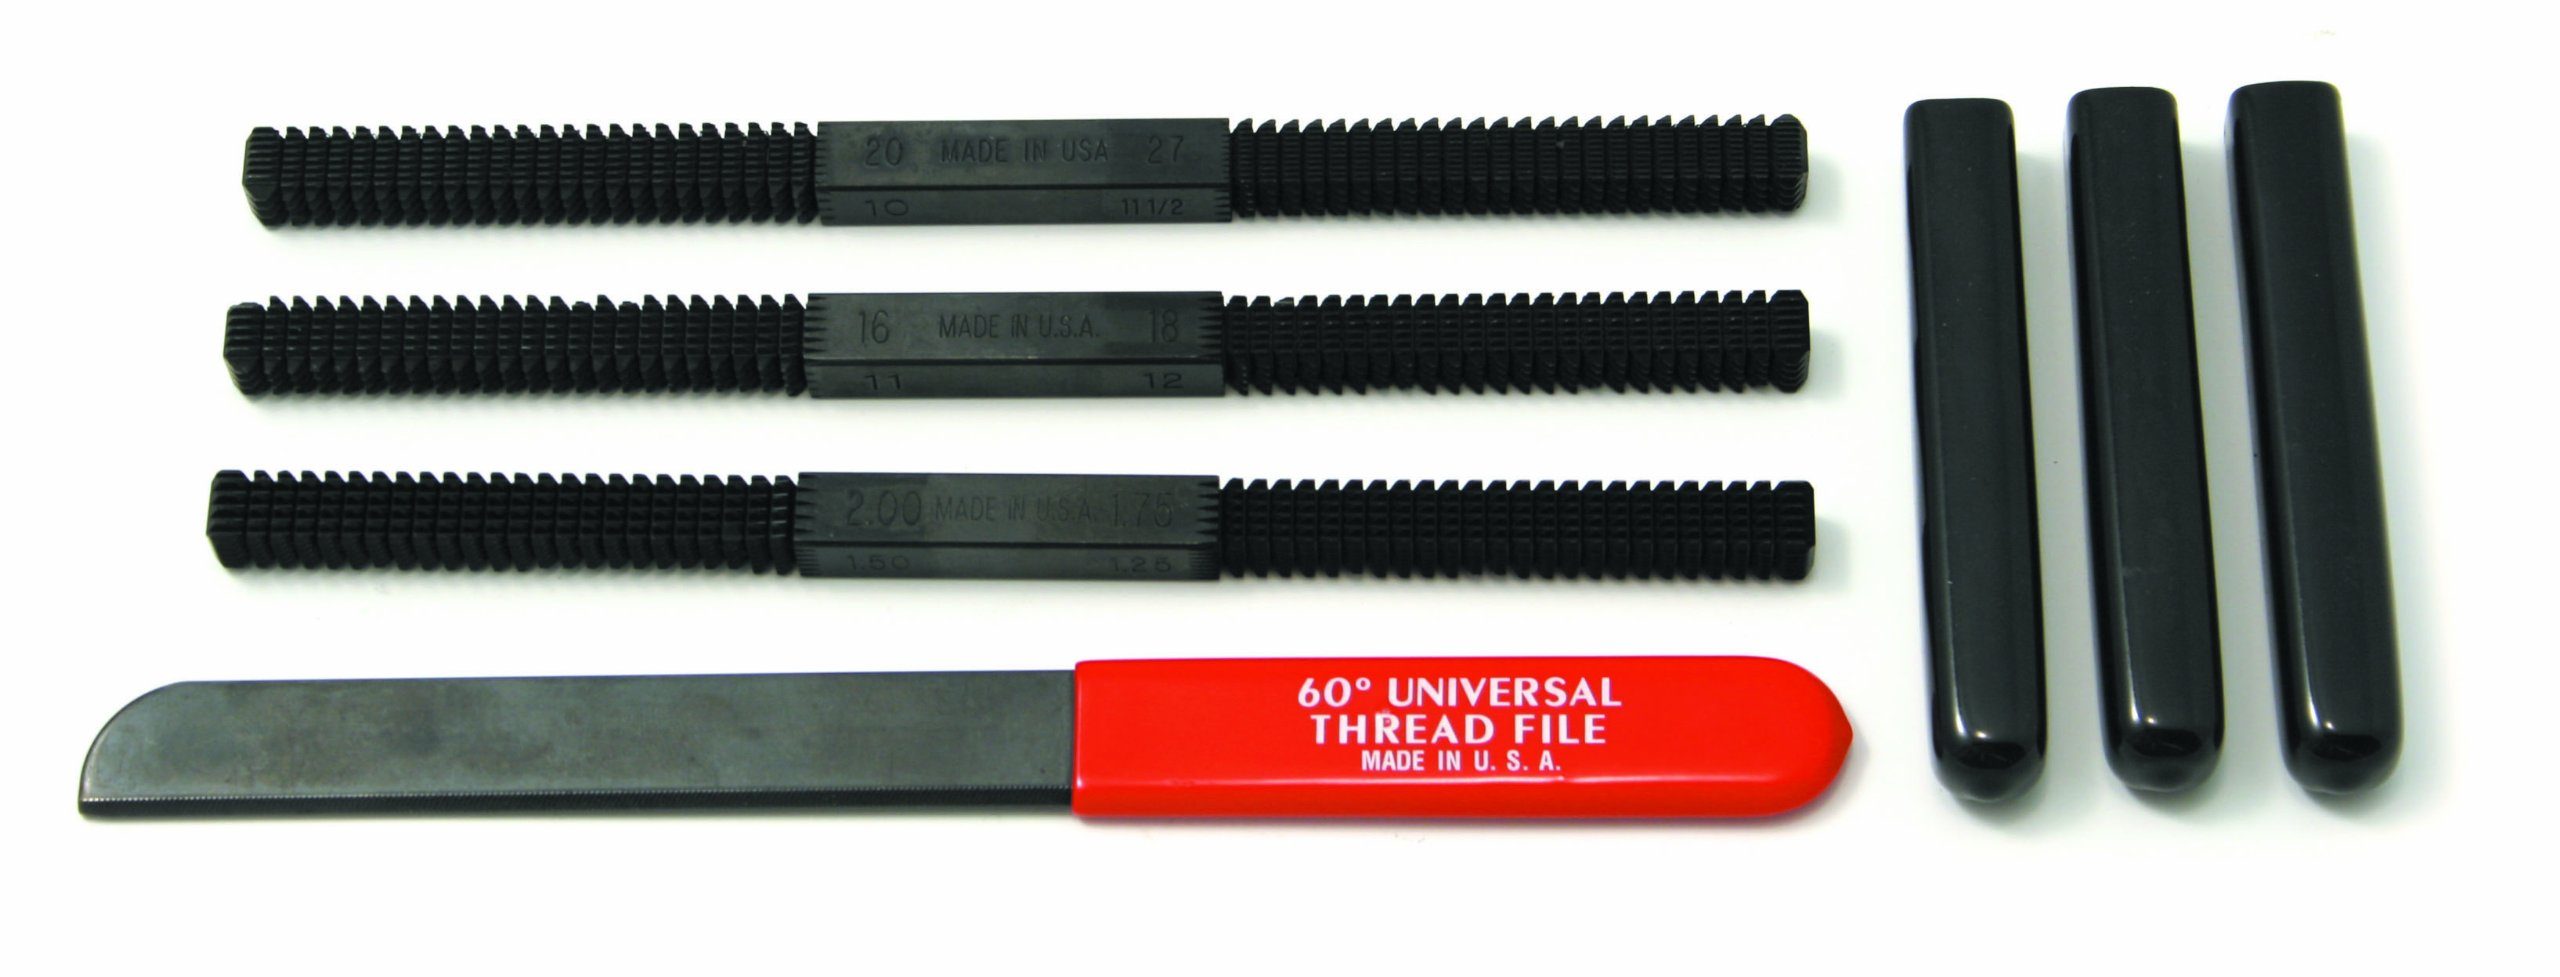 CTA Tools 8230 Thread Restoring File Set - 4 Piece by CTA Tools (Image #1)